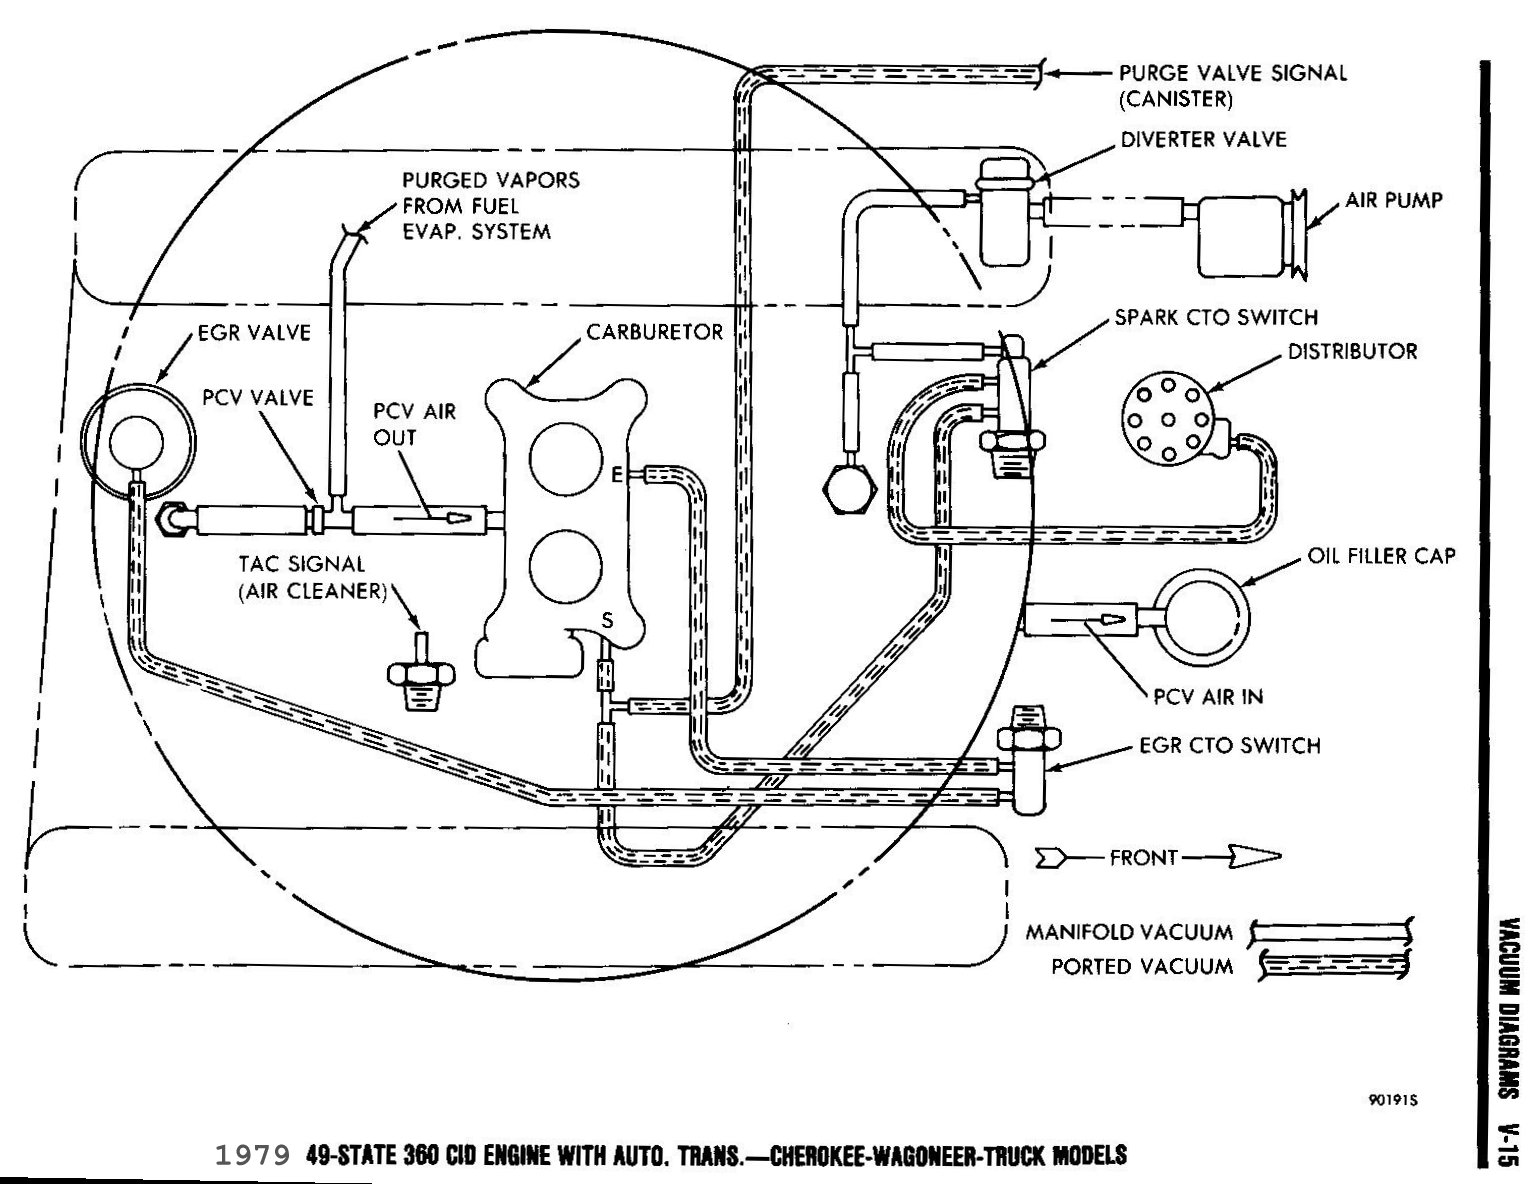 79 Vacuum Diagram And Egr Dead Spot